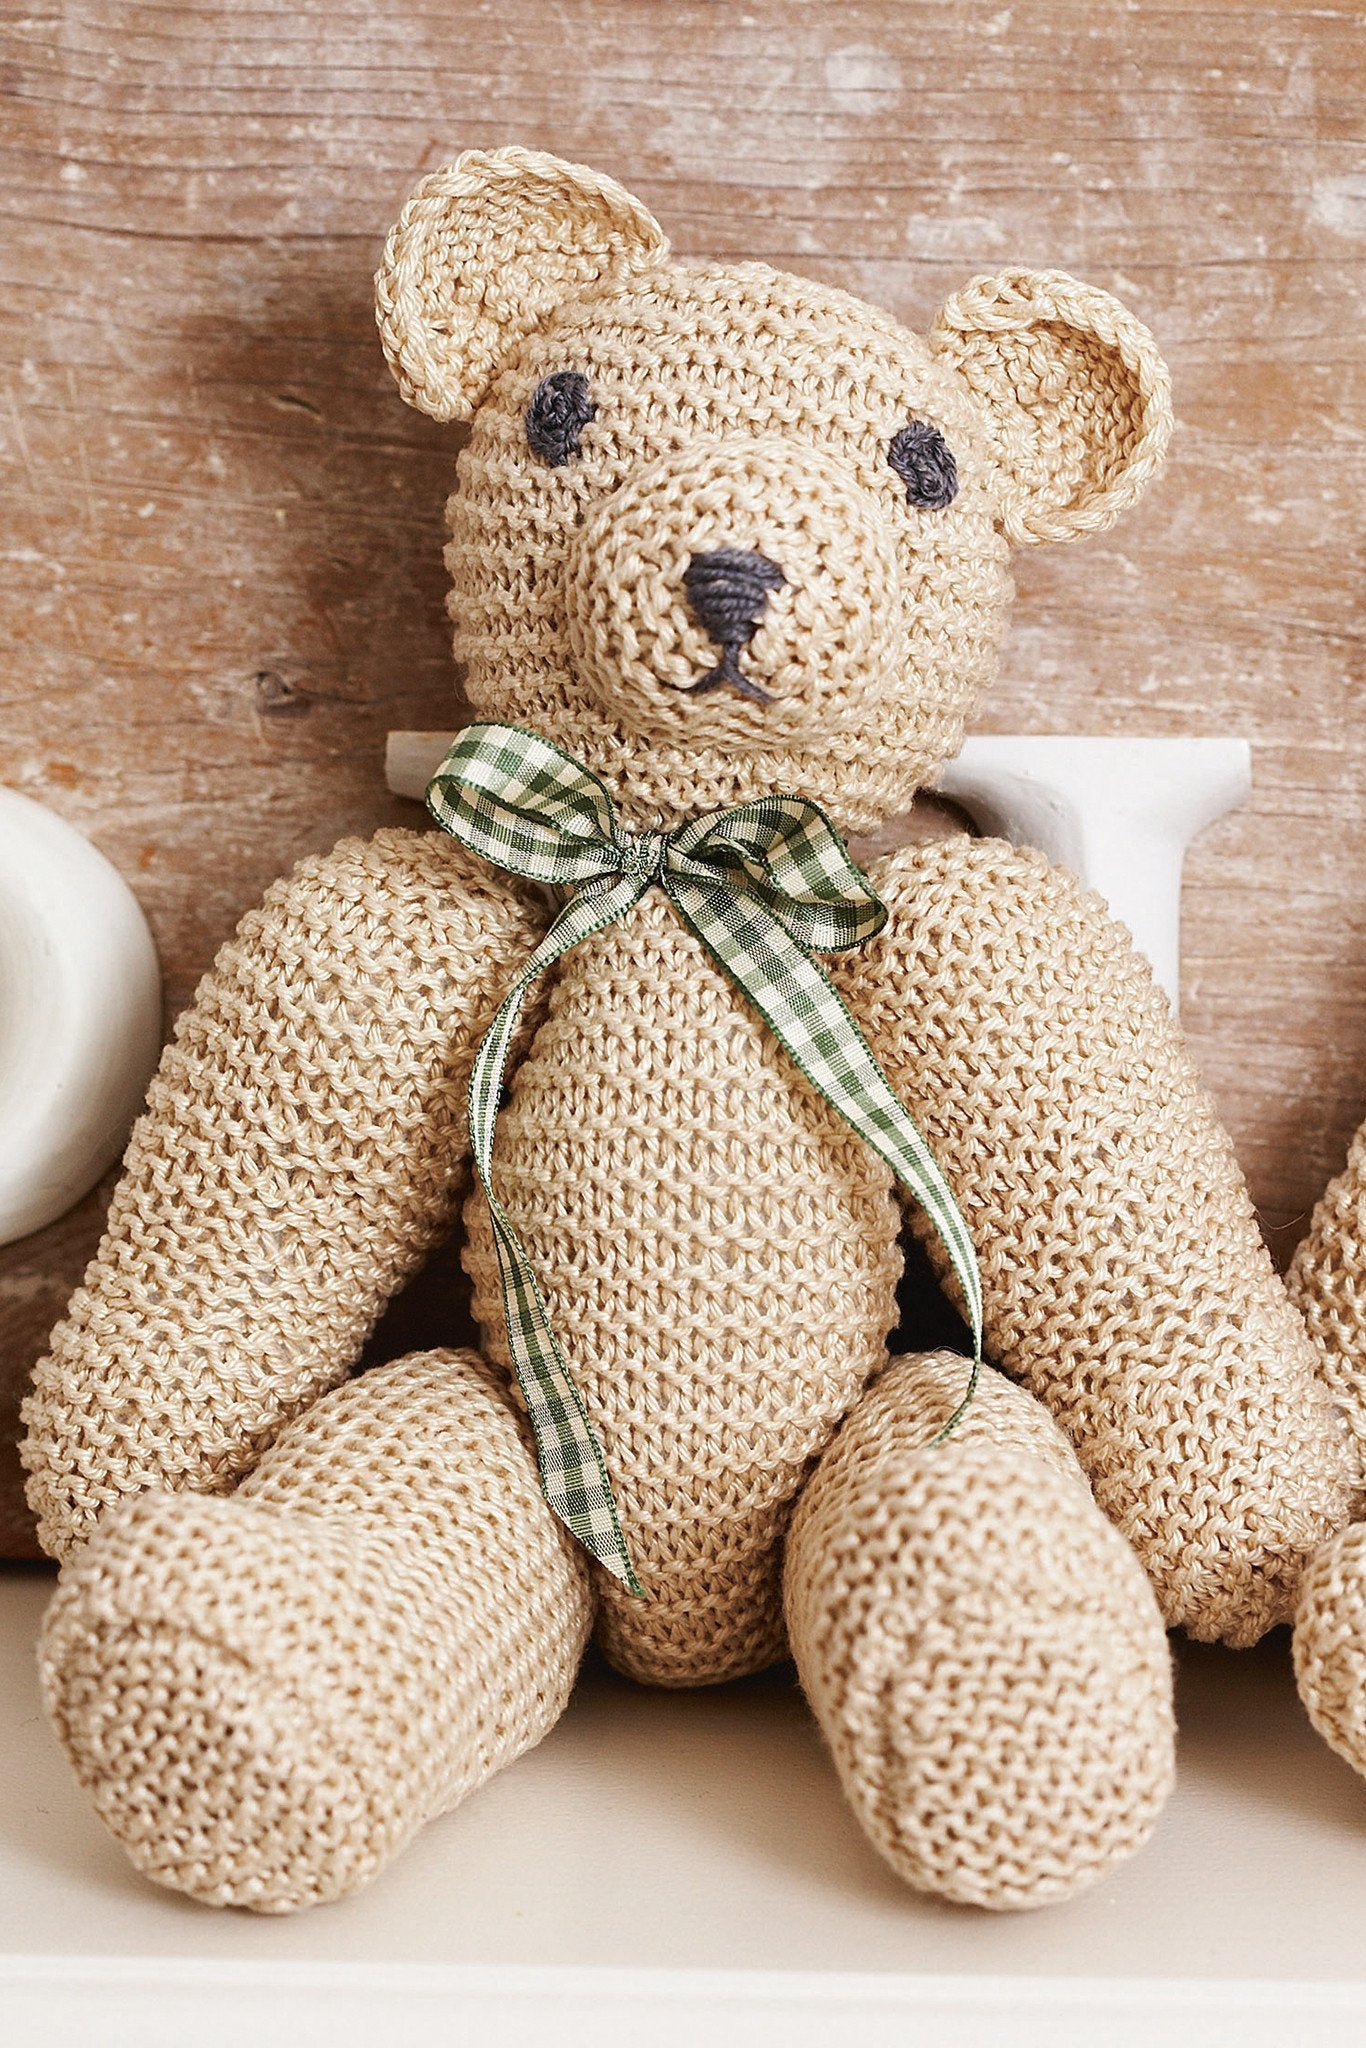 Vintage Teddy Bears Knitting Pattern – The Knitting Network